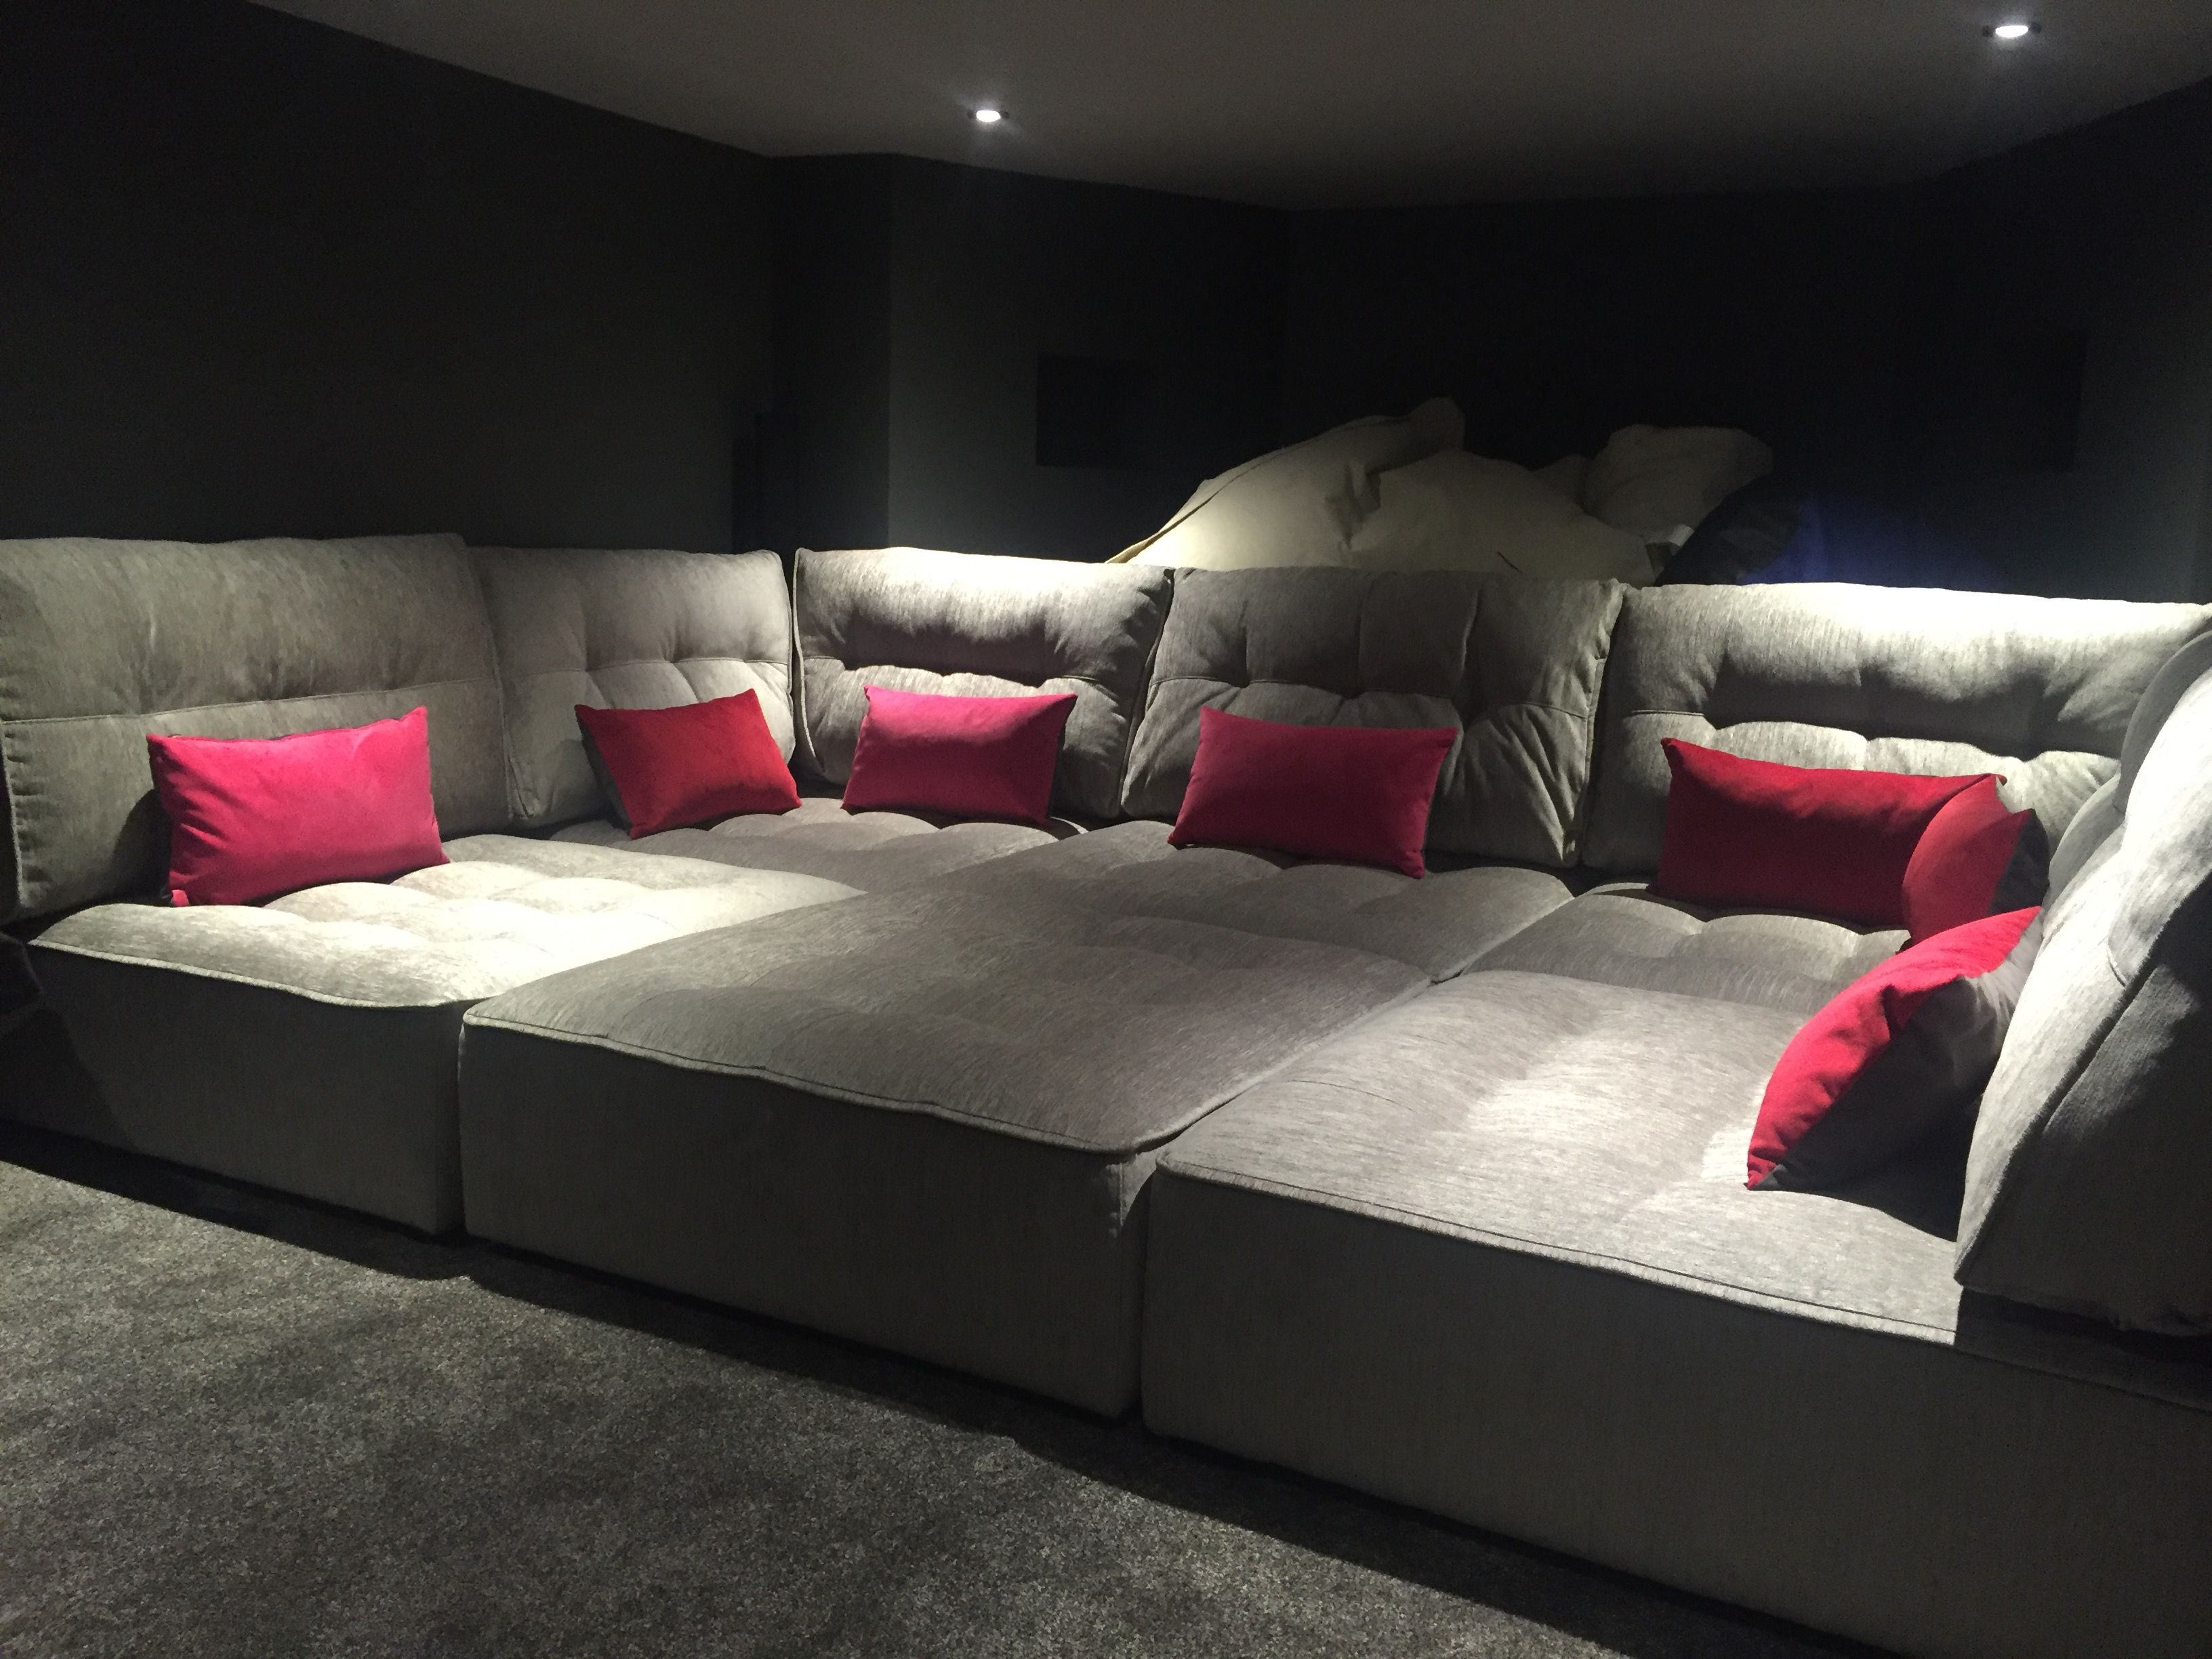 Sb Design Square Sofa Bed Leather Repair Kits For Rips Tapas In A Basement Media Room Perfect The Family To